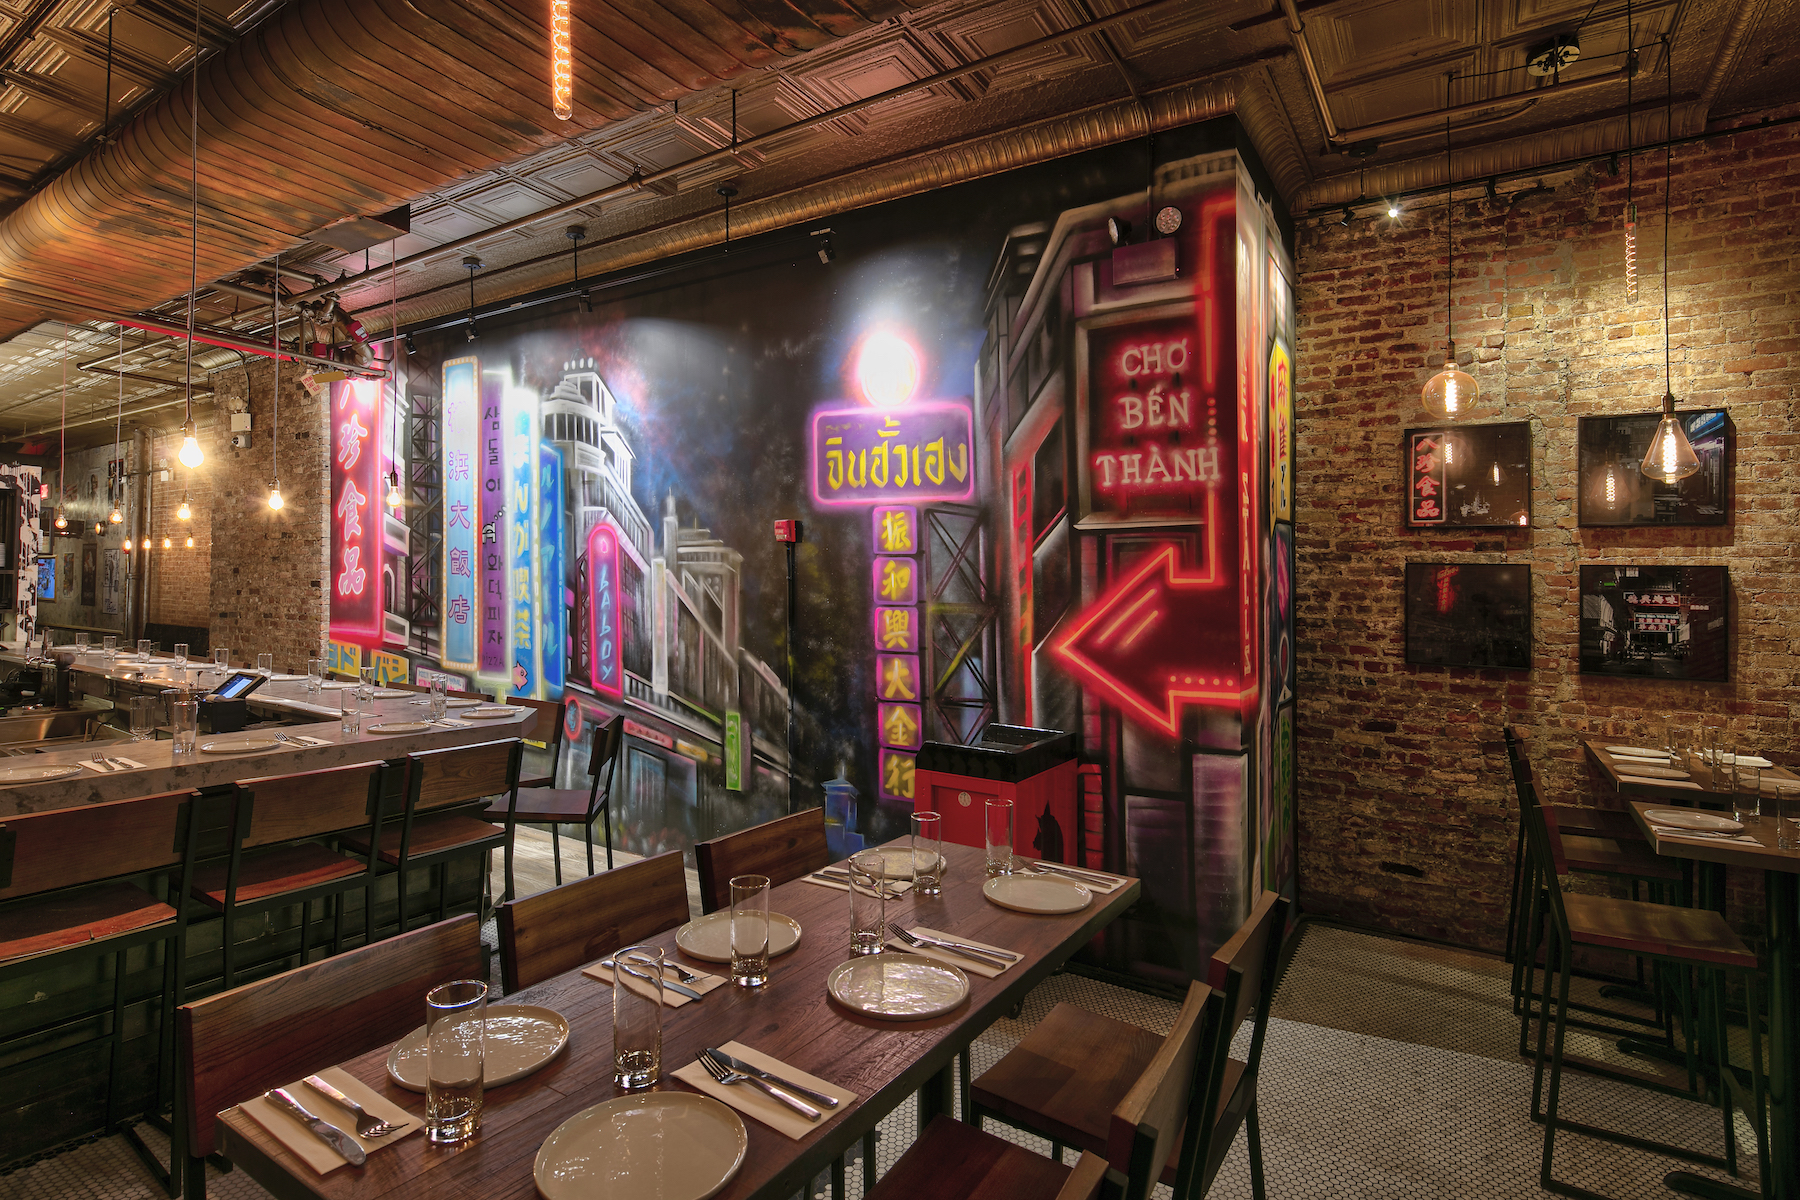 The interior of a restaurant with exposed brick walls, wooden tables placed closed together, and a mural depicting street food markets in Asia